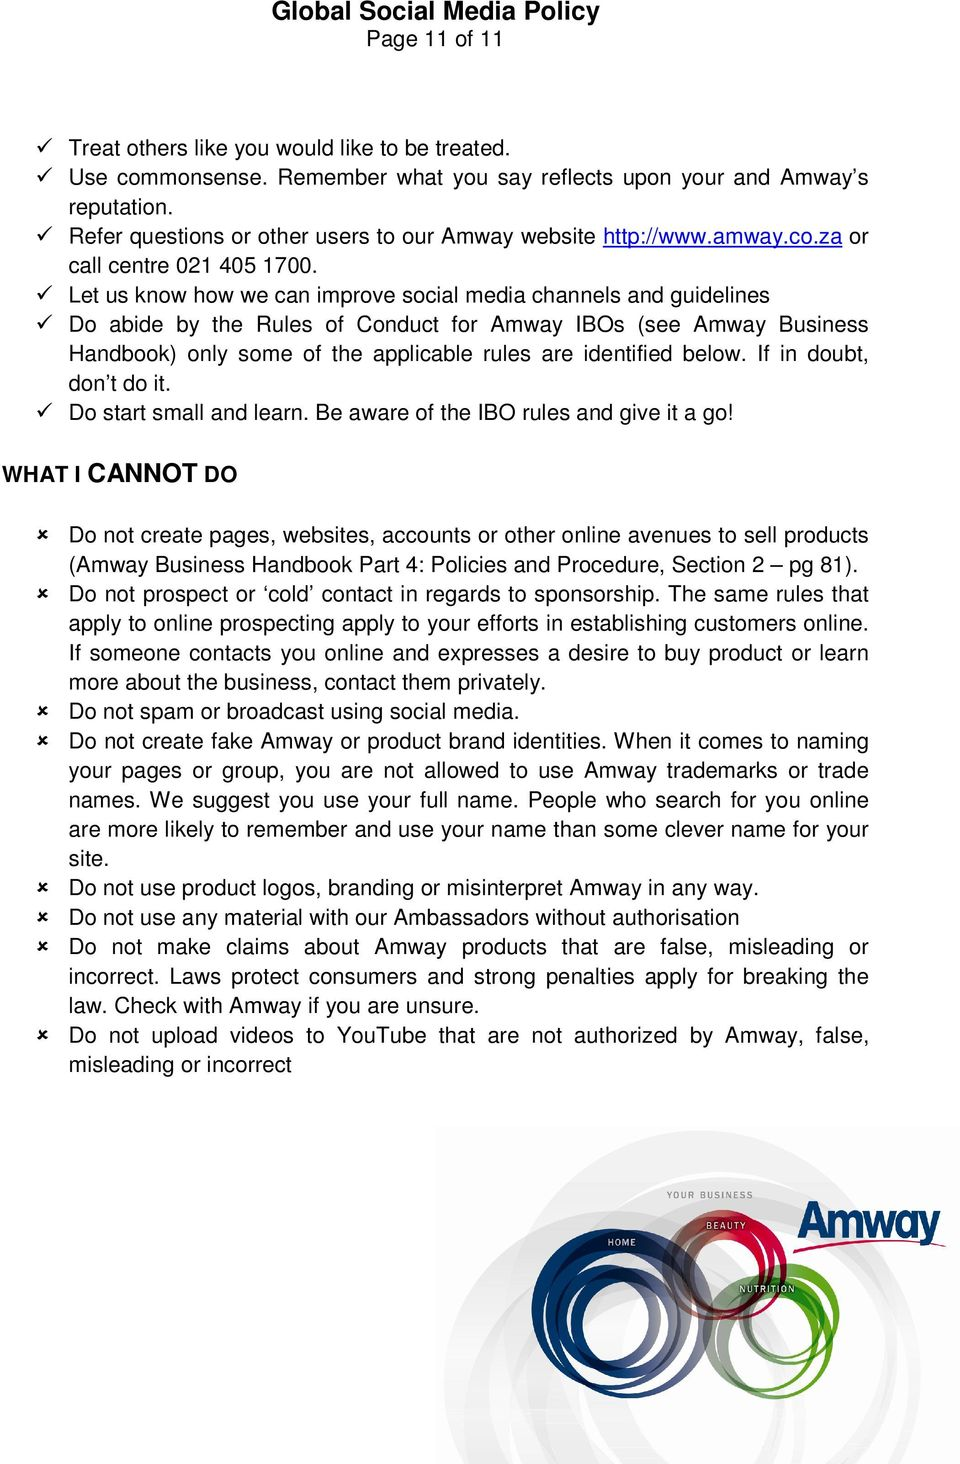 Let us know how we can improve social media channels and guidelines Do abide by the Rules of Conduct for Amway IBOs (see Amway Business Handbook) only some of the applicable rules are identified